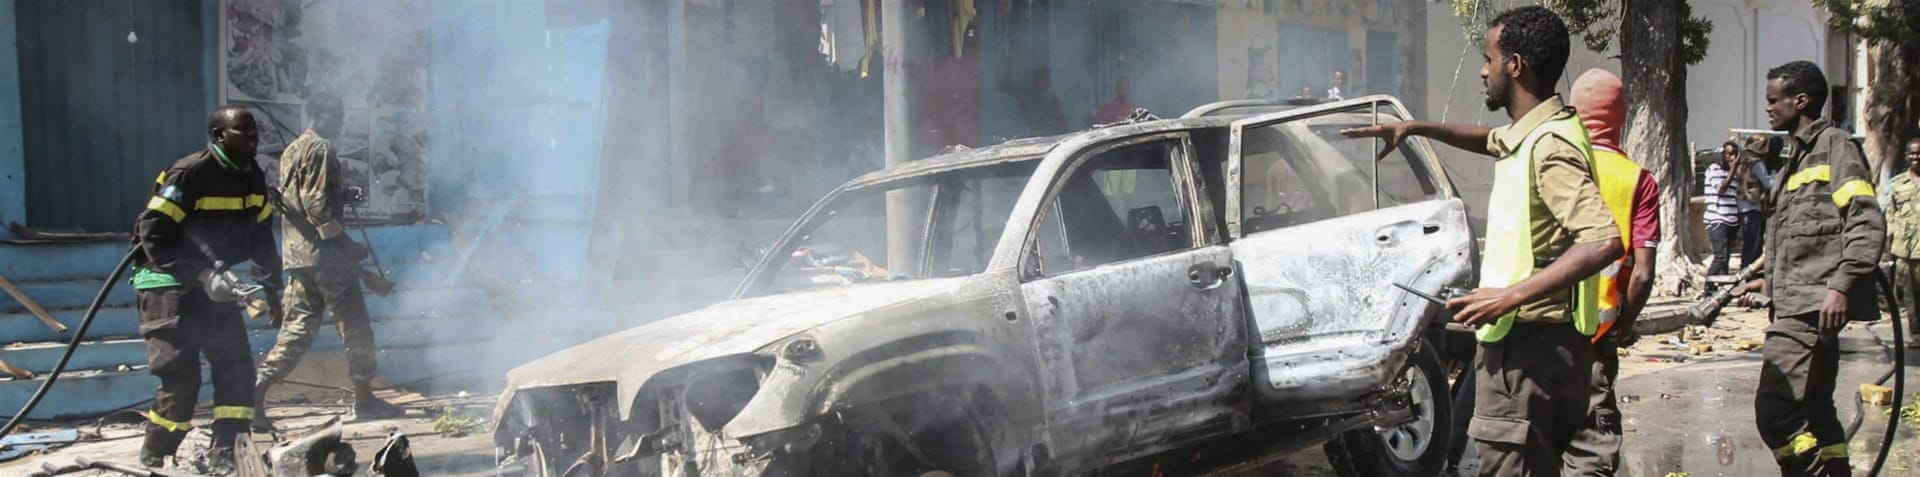 Saturday's suicide attack occurred near the presidential palace in Mogadishu [EPA]